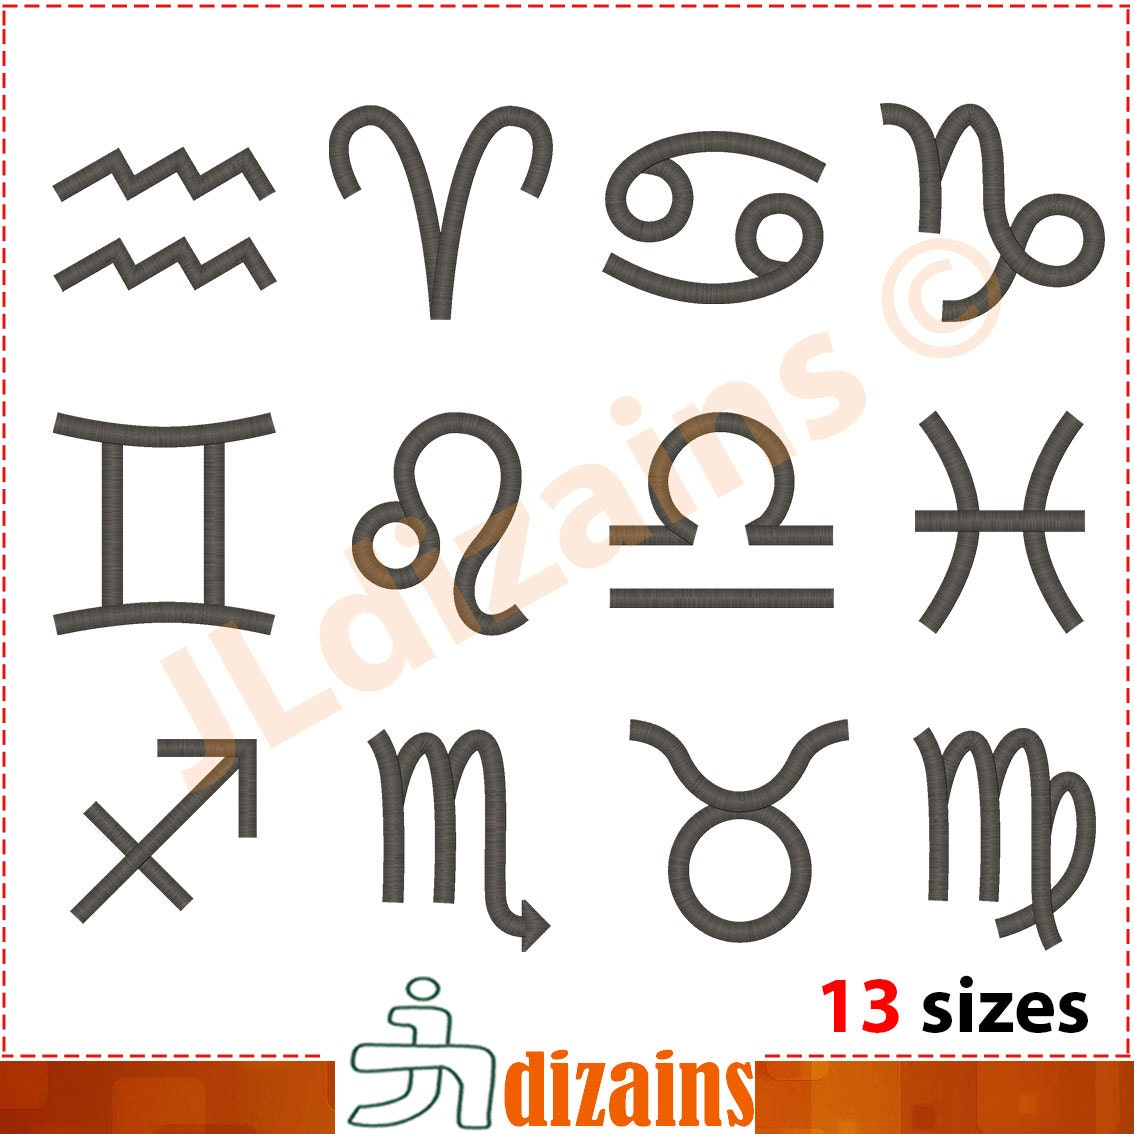 Zodiac signs embroidery design set horoscope symbols